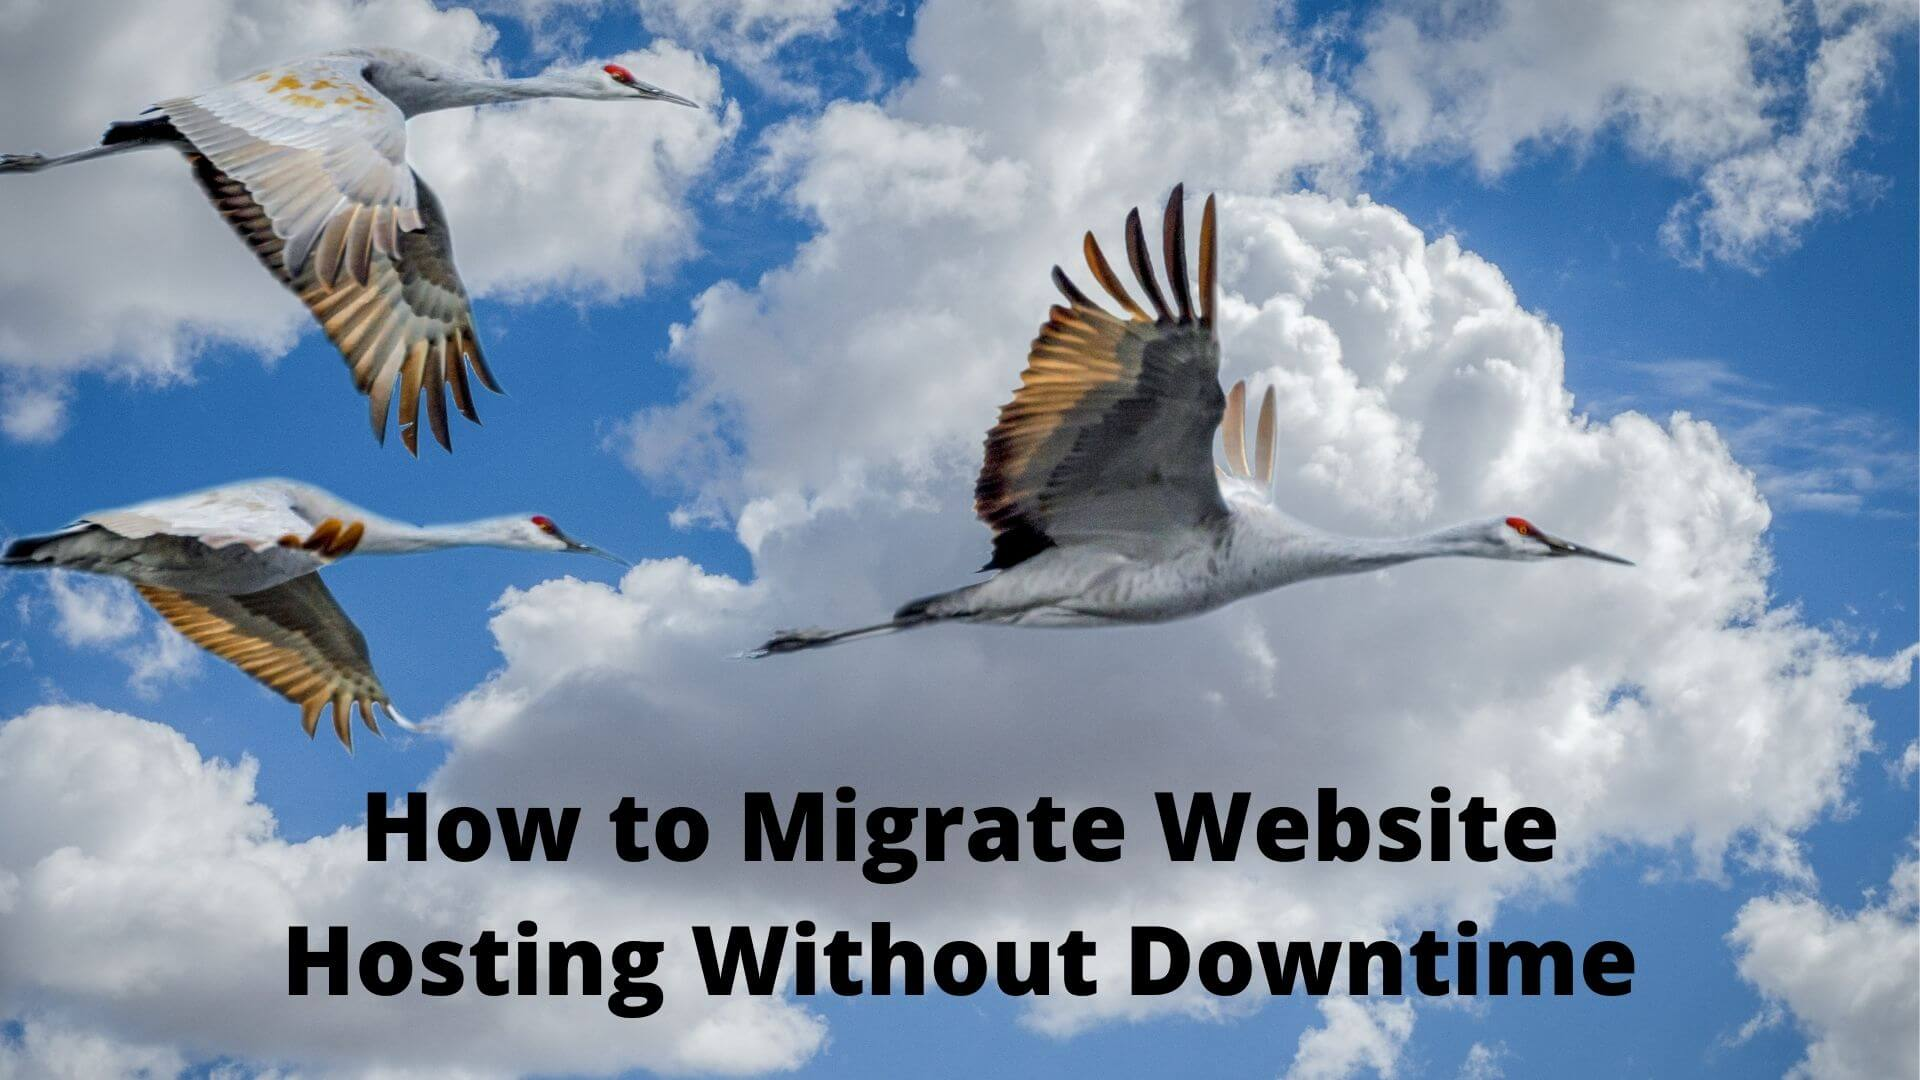 How-to-Migrate-Website-Hosting-Without-Downtime-1